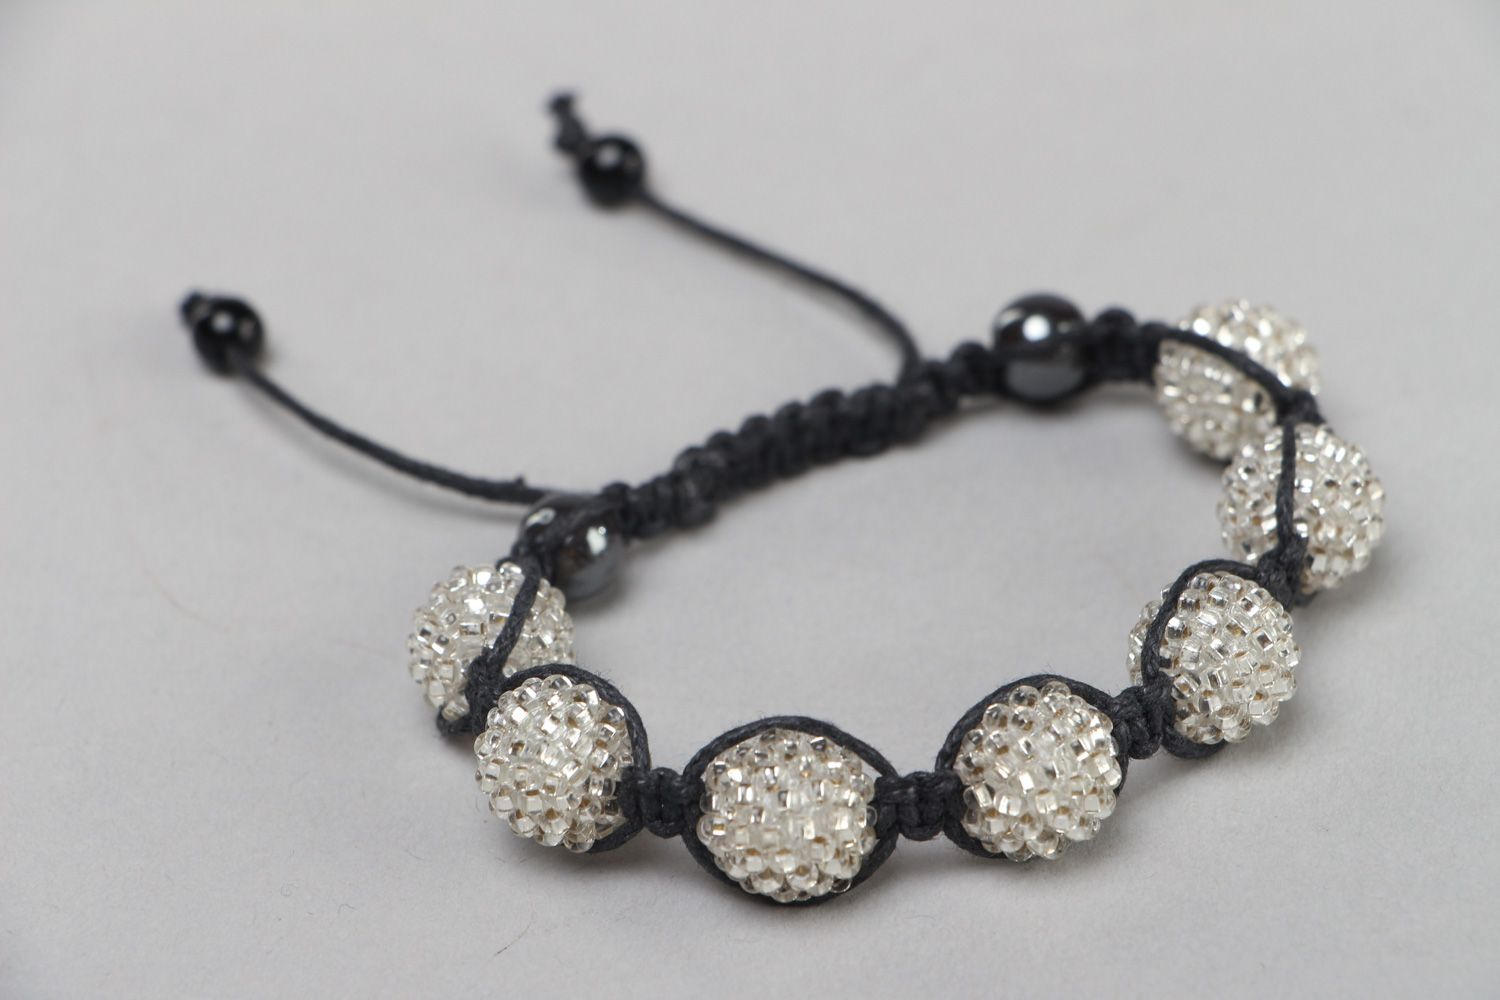 Handmade black and white friendship bracelet woven of waxed cord and beads  photo 1